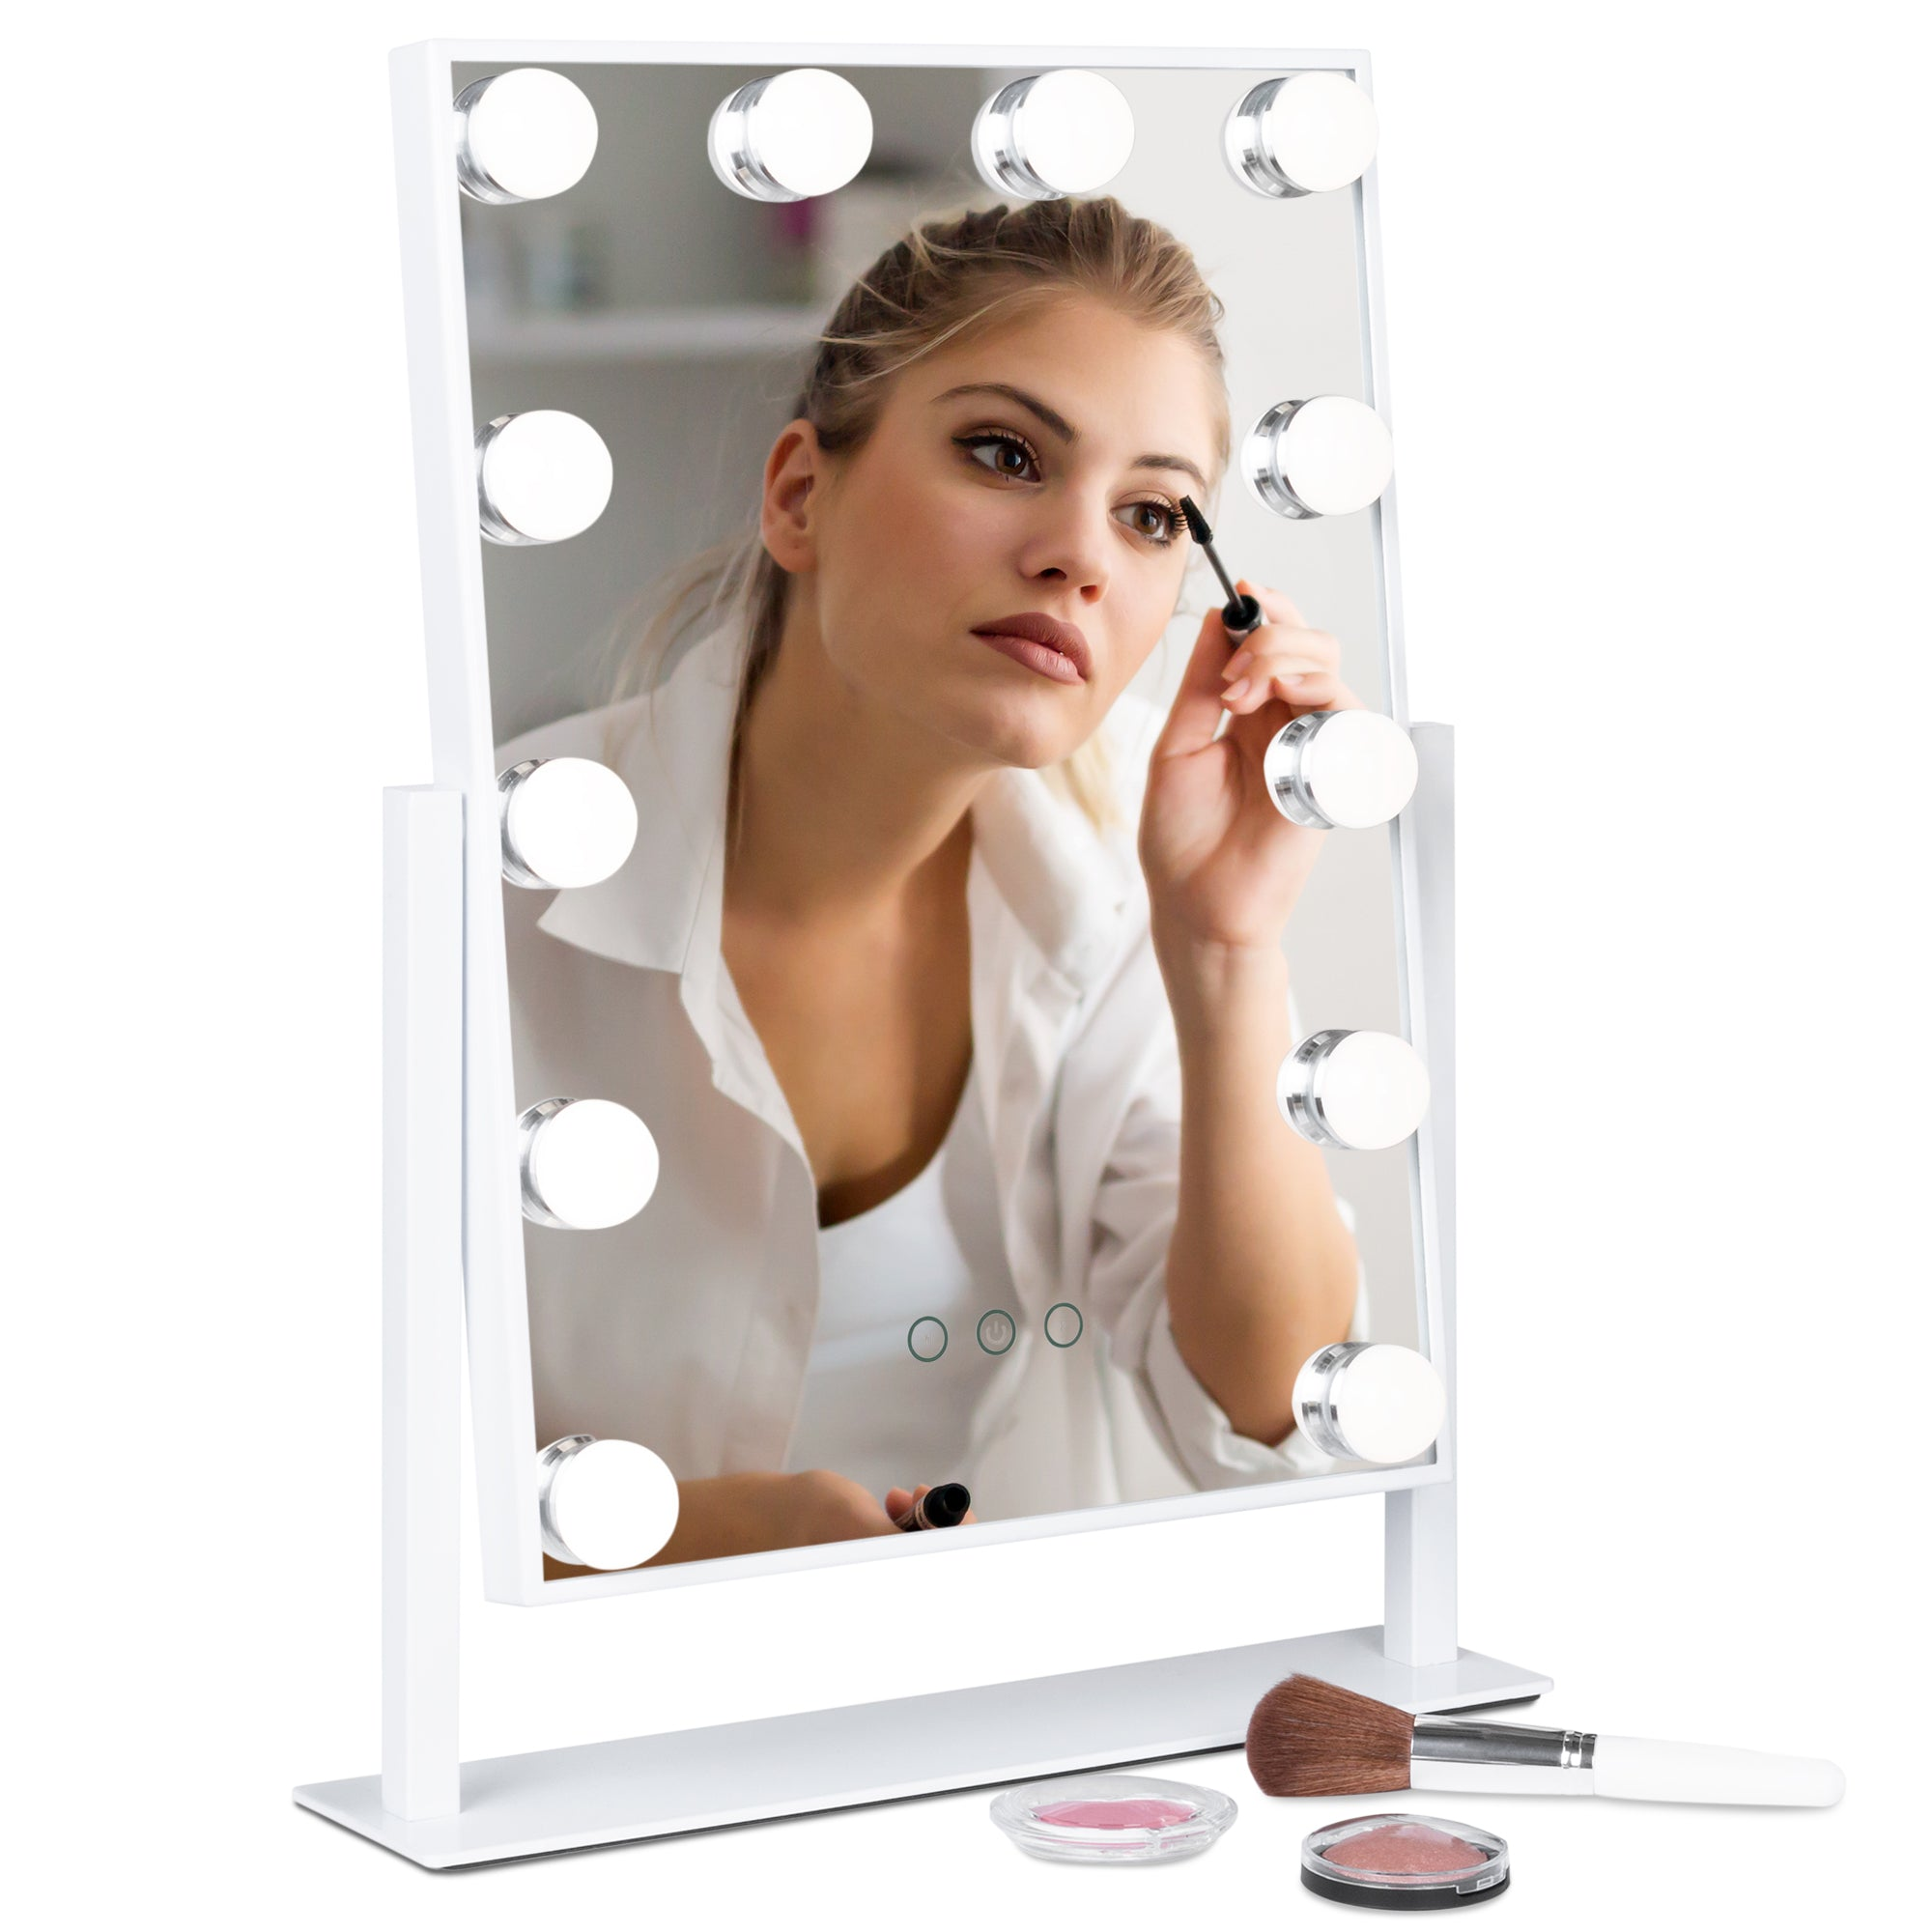 Smart Touch Vanity Mirror w/ 12 LEDs, Adjustable Color Temp & Brightness